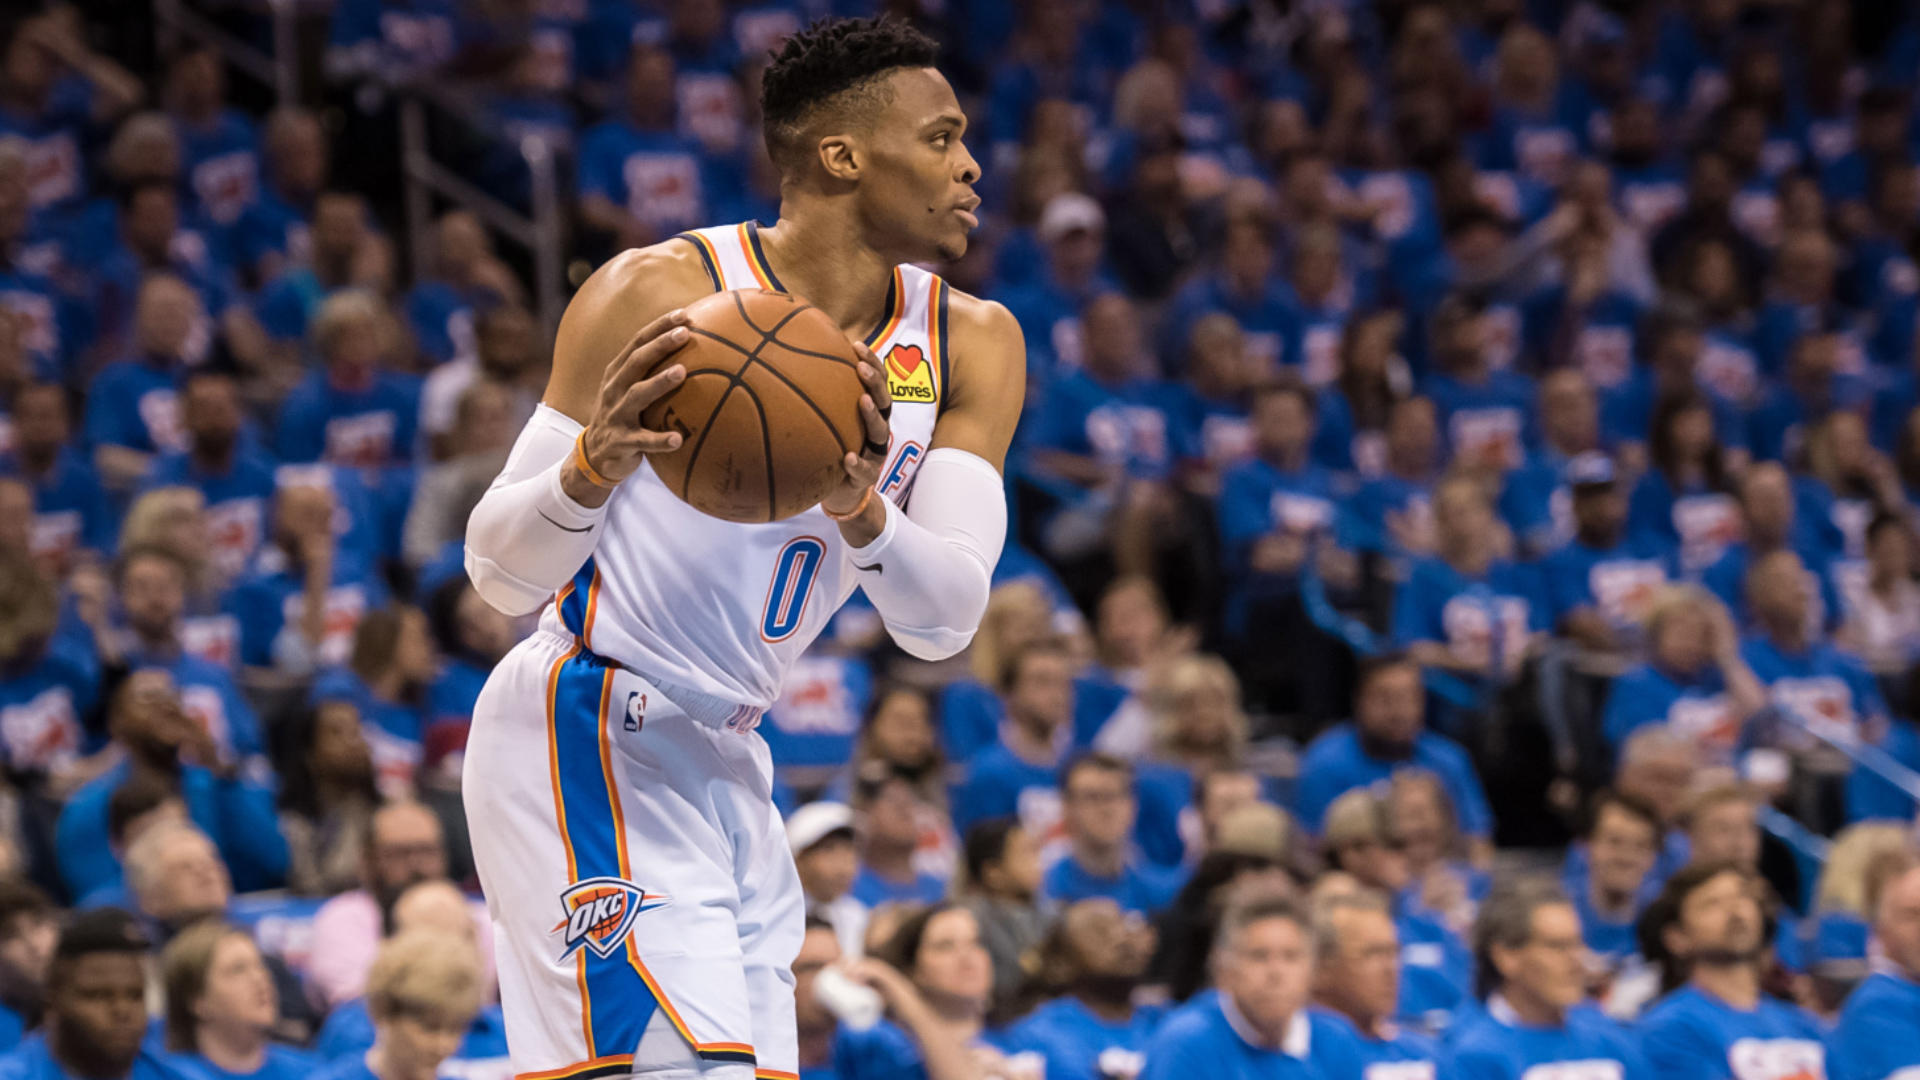 NBA Playoffs: Russell Westbrook, Damian Lillard, and finally ending this fallacy of 'playing the right way'